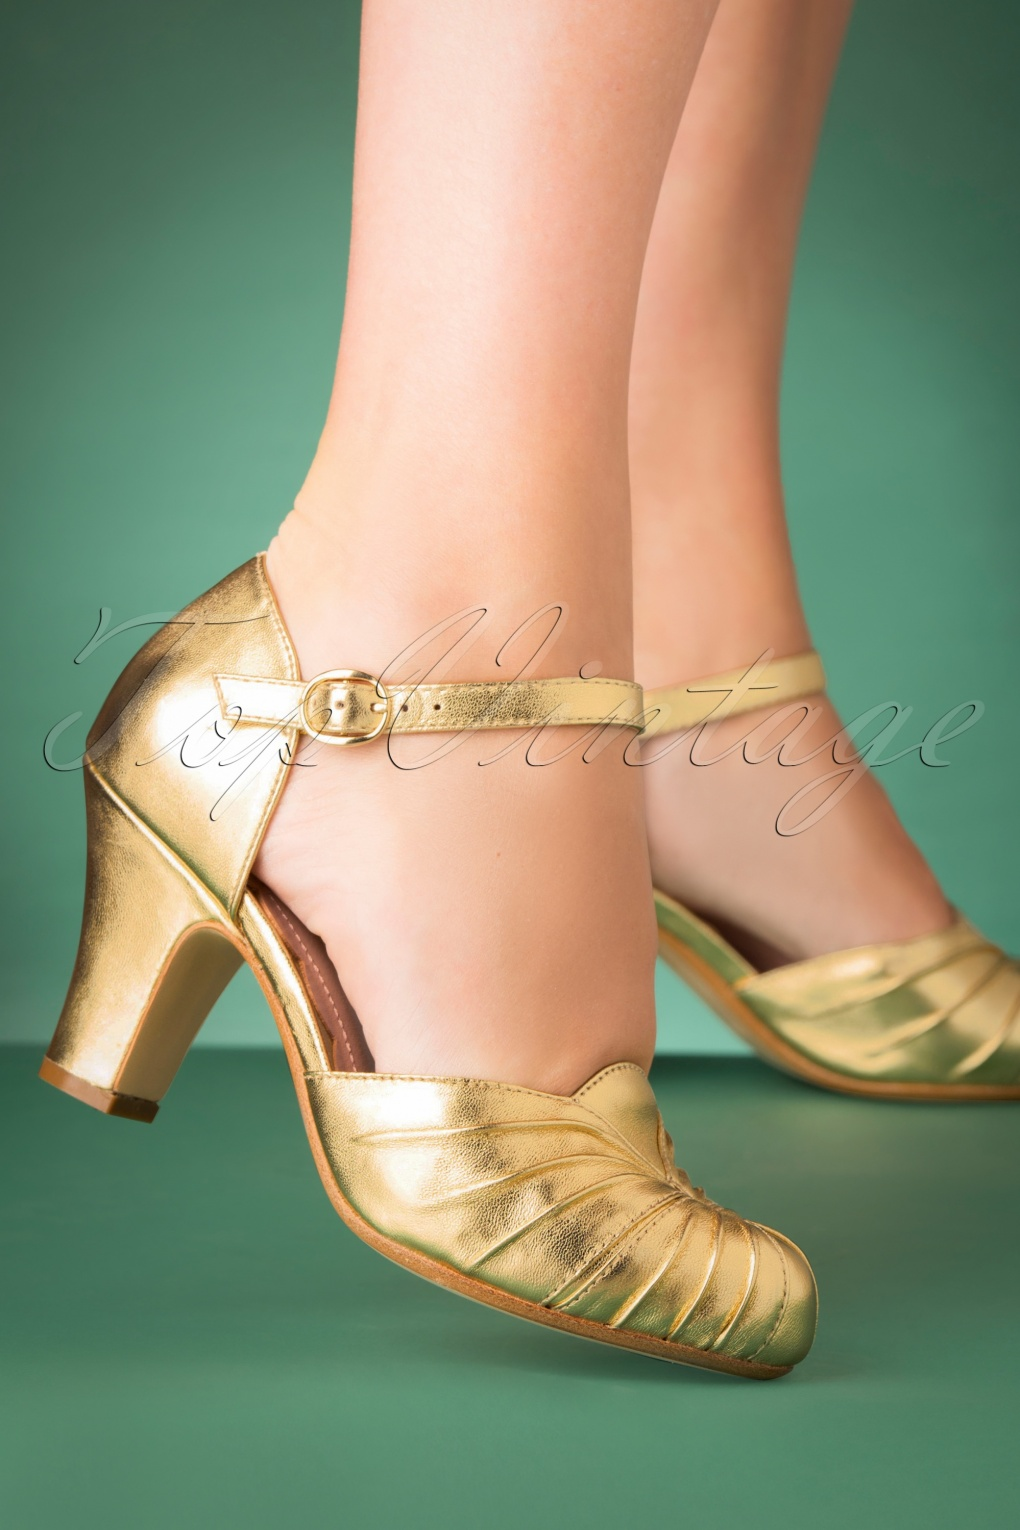 Vintage Style Shoes, Vintage Inspired Shoes 40s Amber Leather Mary Jane Pumps in Gold £149.86 AT vintagedancer.com